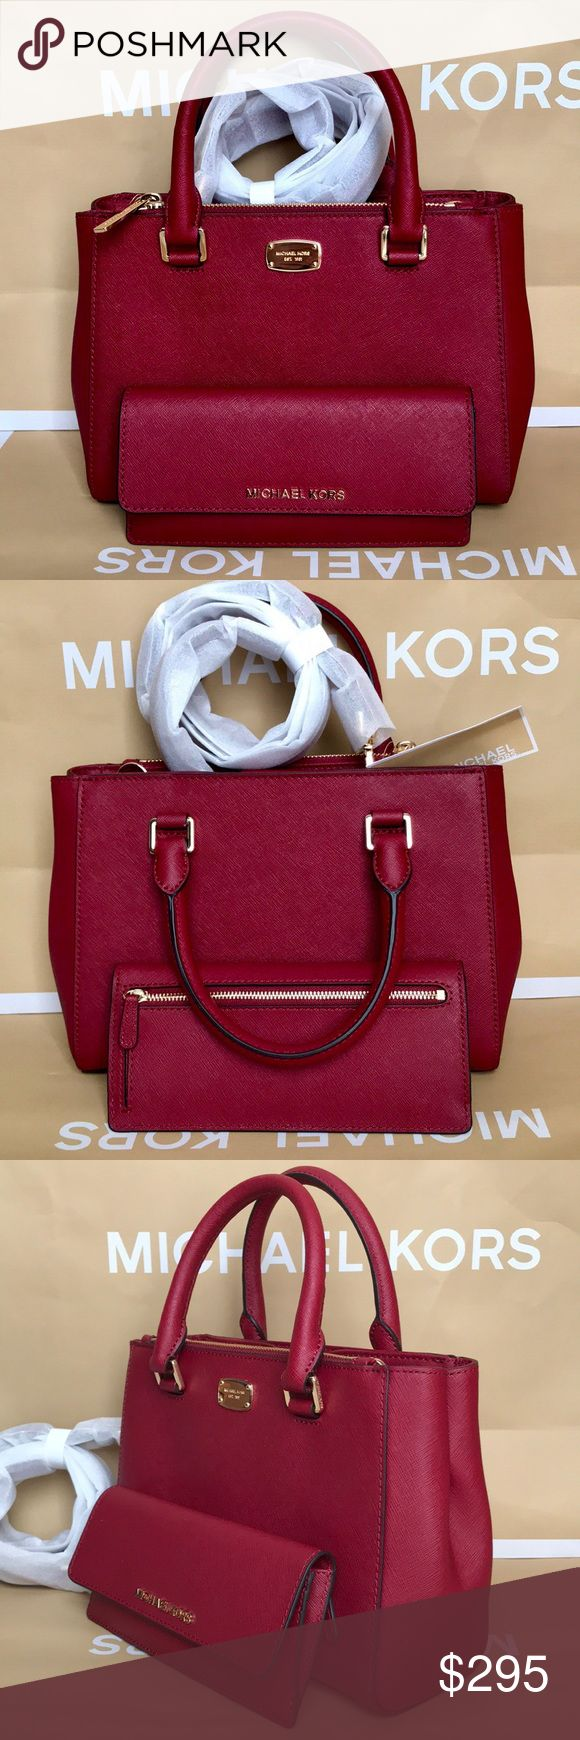 🌴Michael Kors Set🌴 100% Authentic Michael Kors Purse Crossbody and Wallet, brand new with tag!😍😍😍color Cherry Red Michael Kors Bags Crossbody Bags http://feedproxy.google.com/fashiongobags